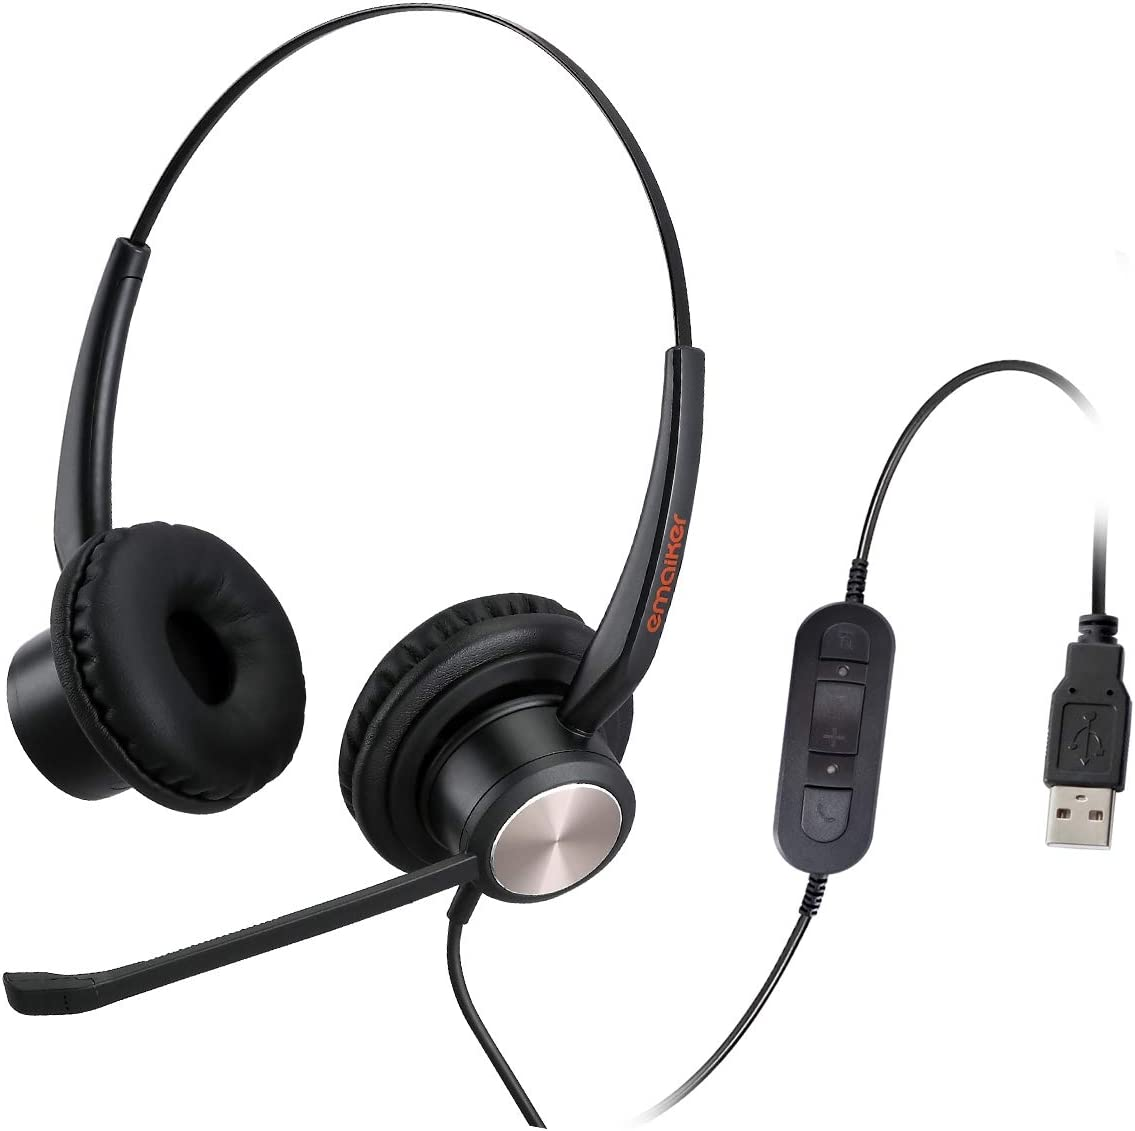 Emaiker Stereo USB Headset with Noise Cancelling Microphone PC Headphone with Mic Mute Volume Control Call Button for Office Call Center Skype Chat Teams Zoom Dragon Voice Recognition Speech Dictation